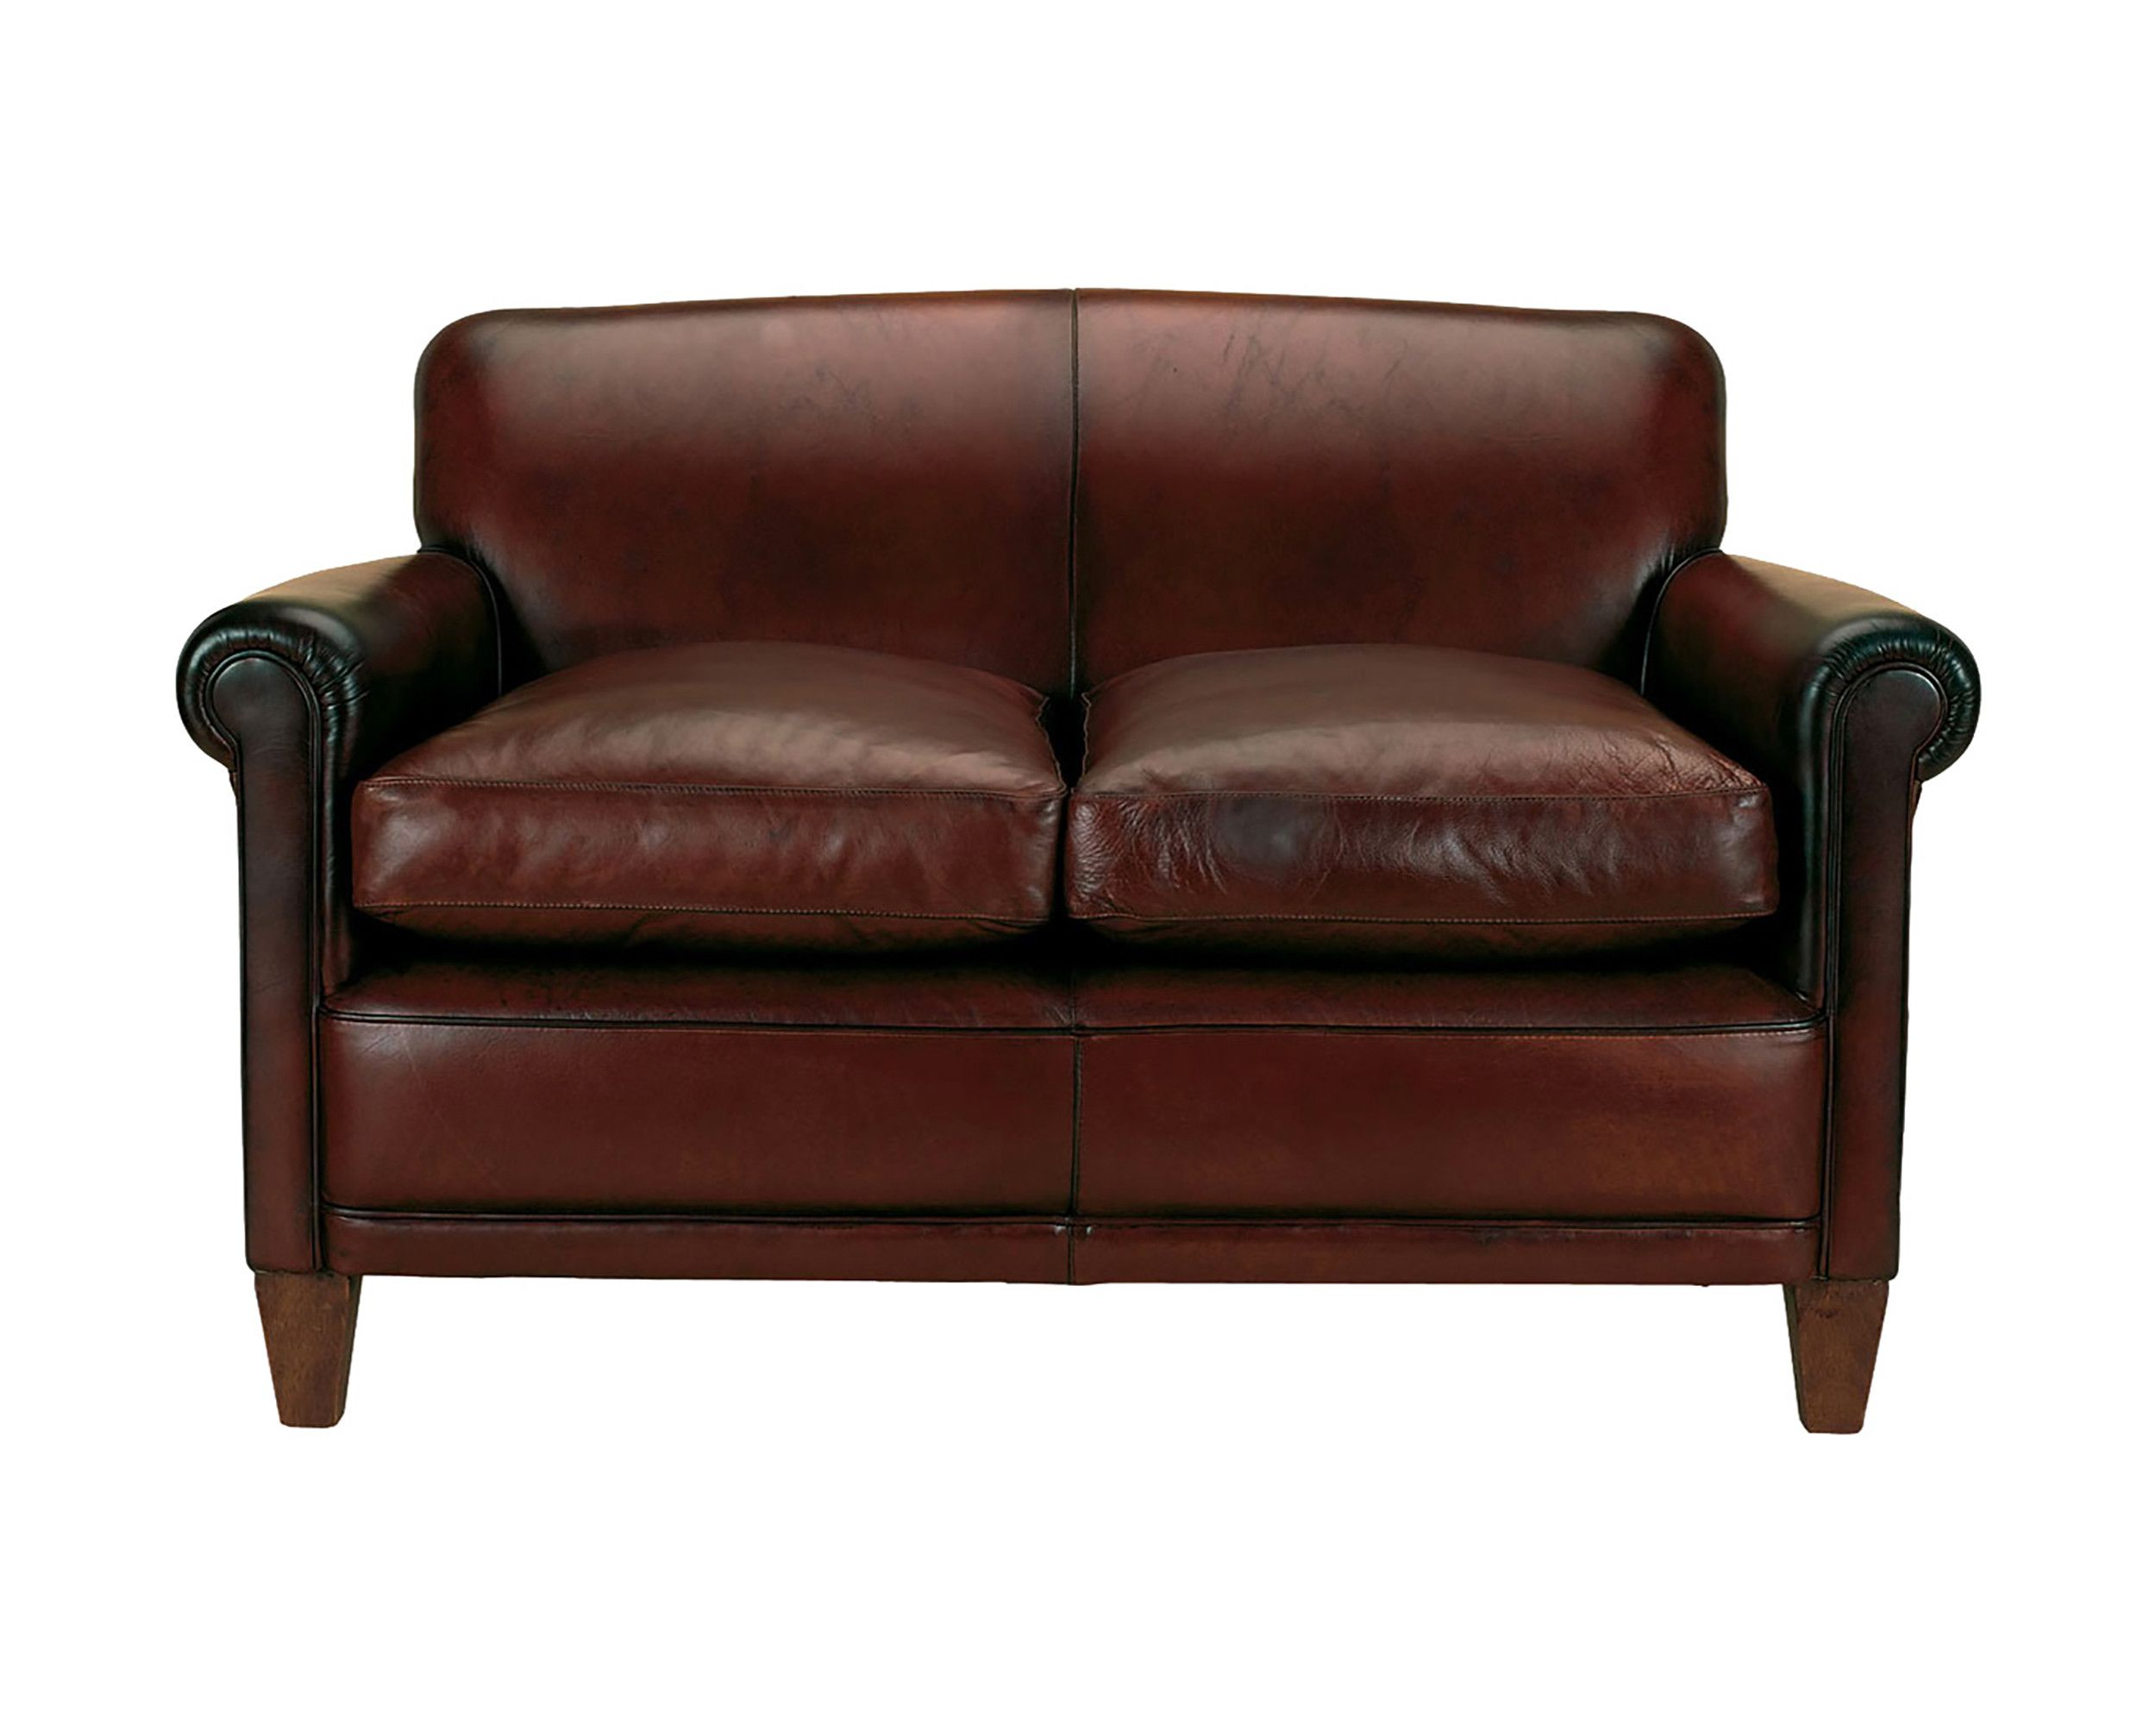 Made to order sofas - Burlington Leather Large 2 Seater ...